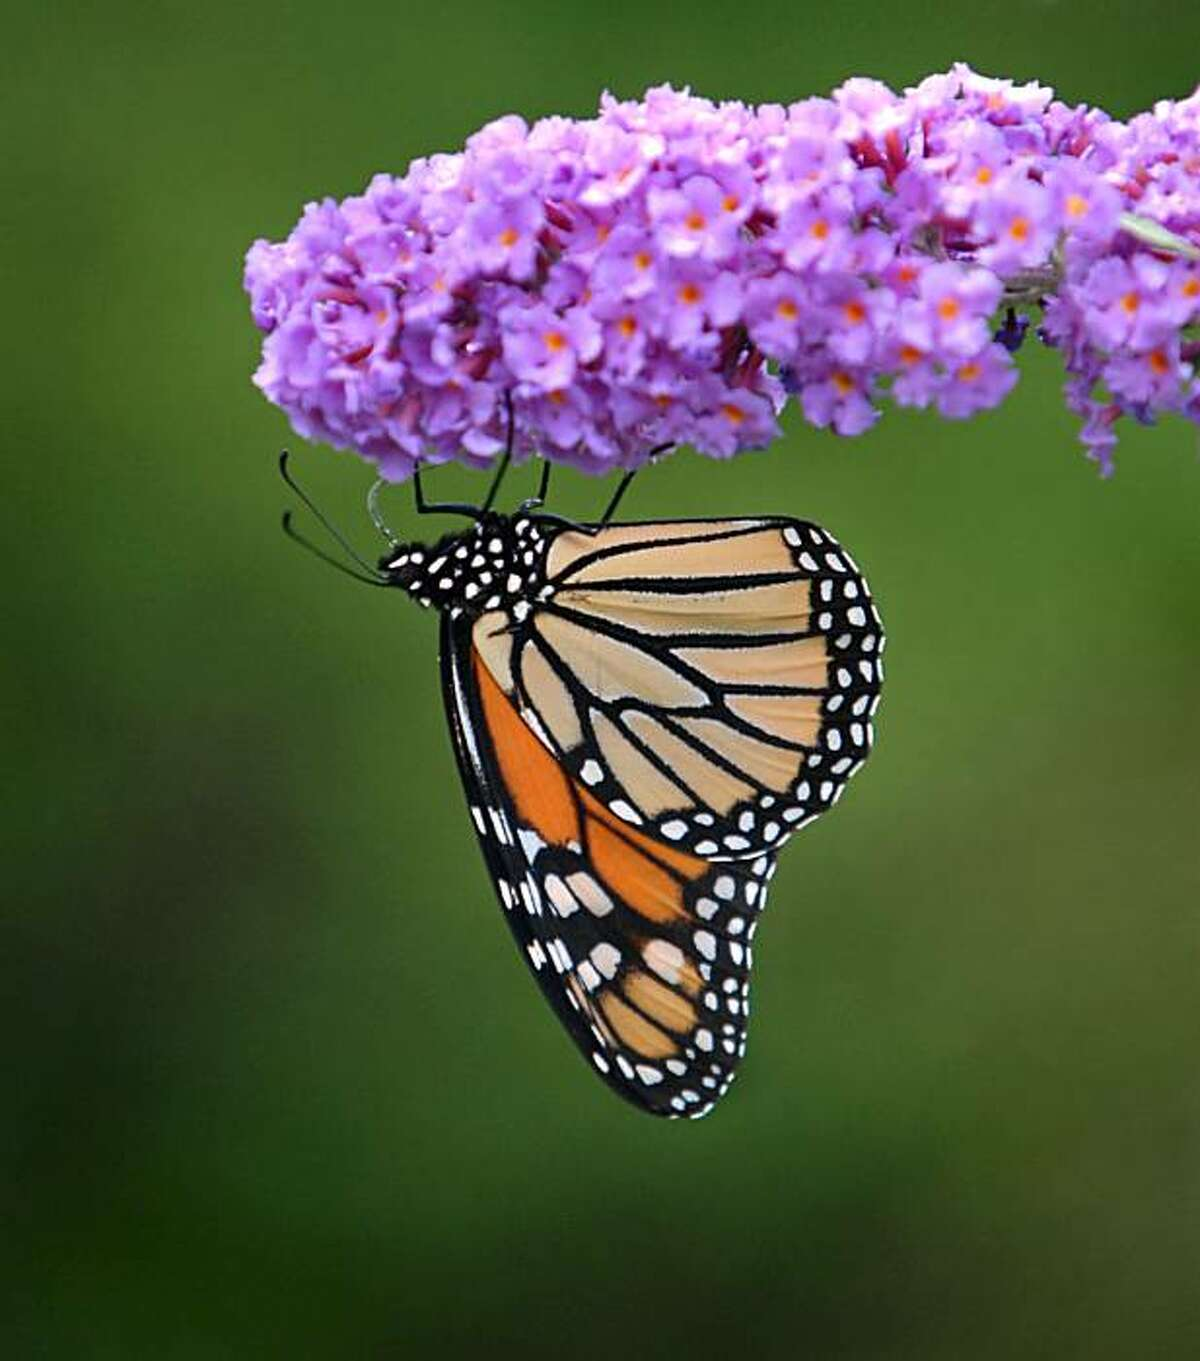 A Monarch butterfly extracts nectar from the blooms of a butterfly bush in Akron, Pa Friday, Sept. 18, 2009. The Monarch migration south usually begins in August and continues until the first frost in North America. (AP Photo/Intelligencer Journal, Dan Marschka)